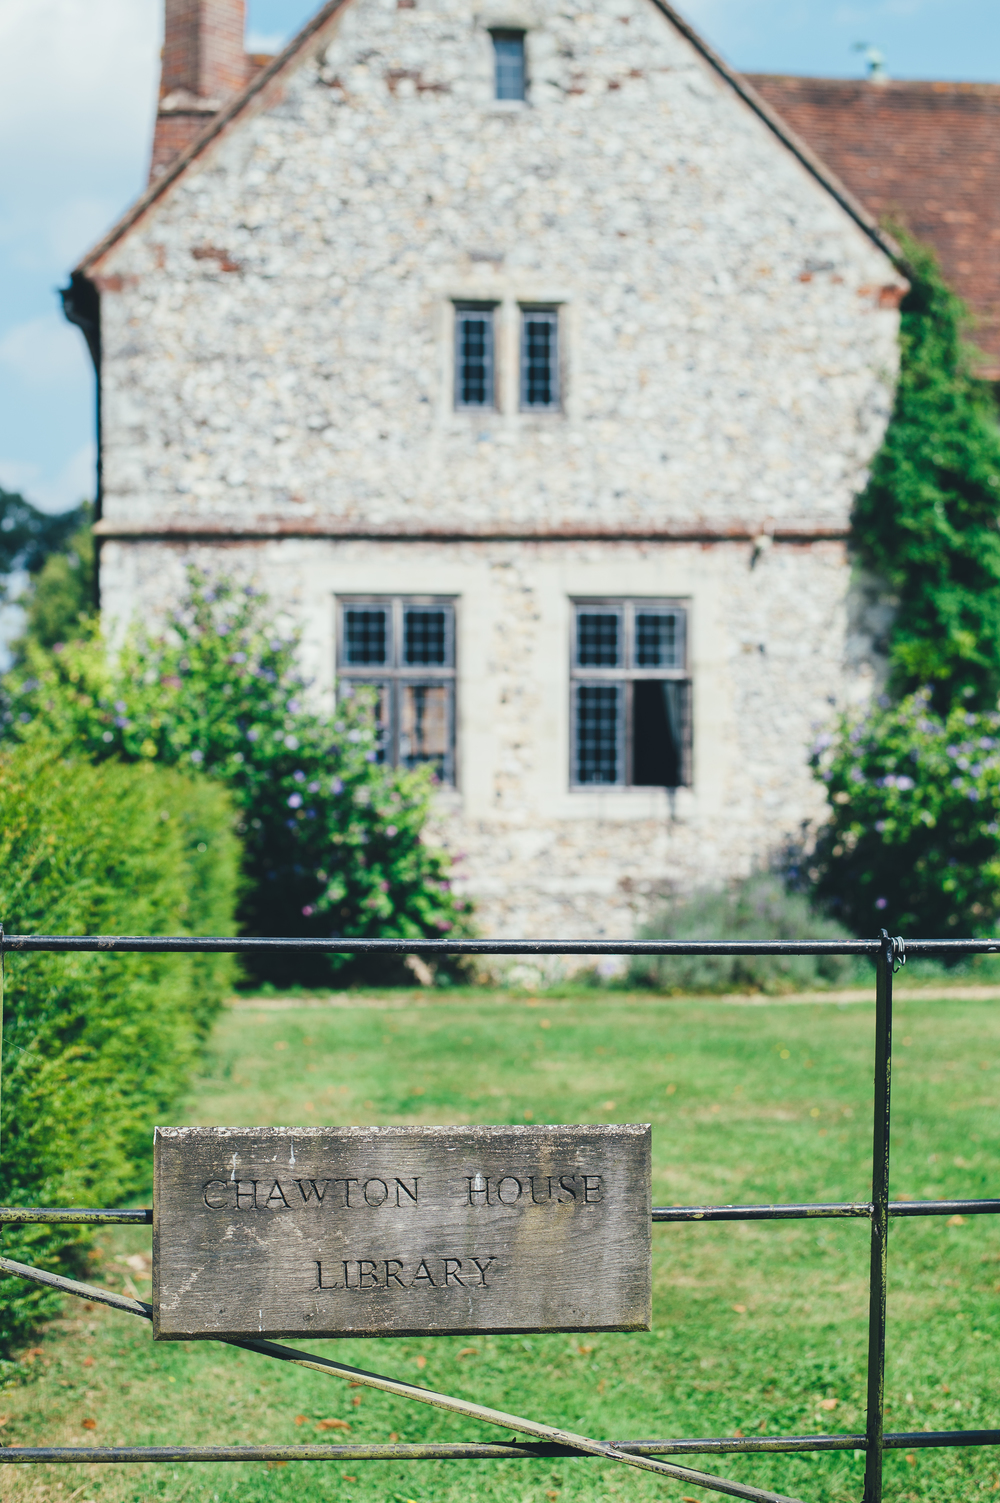 Chawton House Library